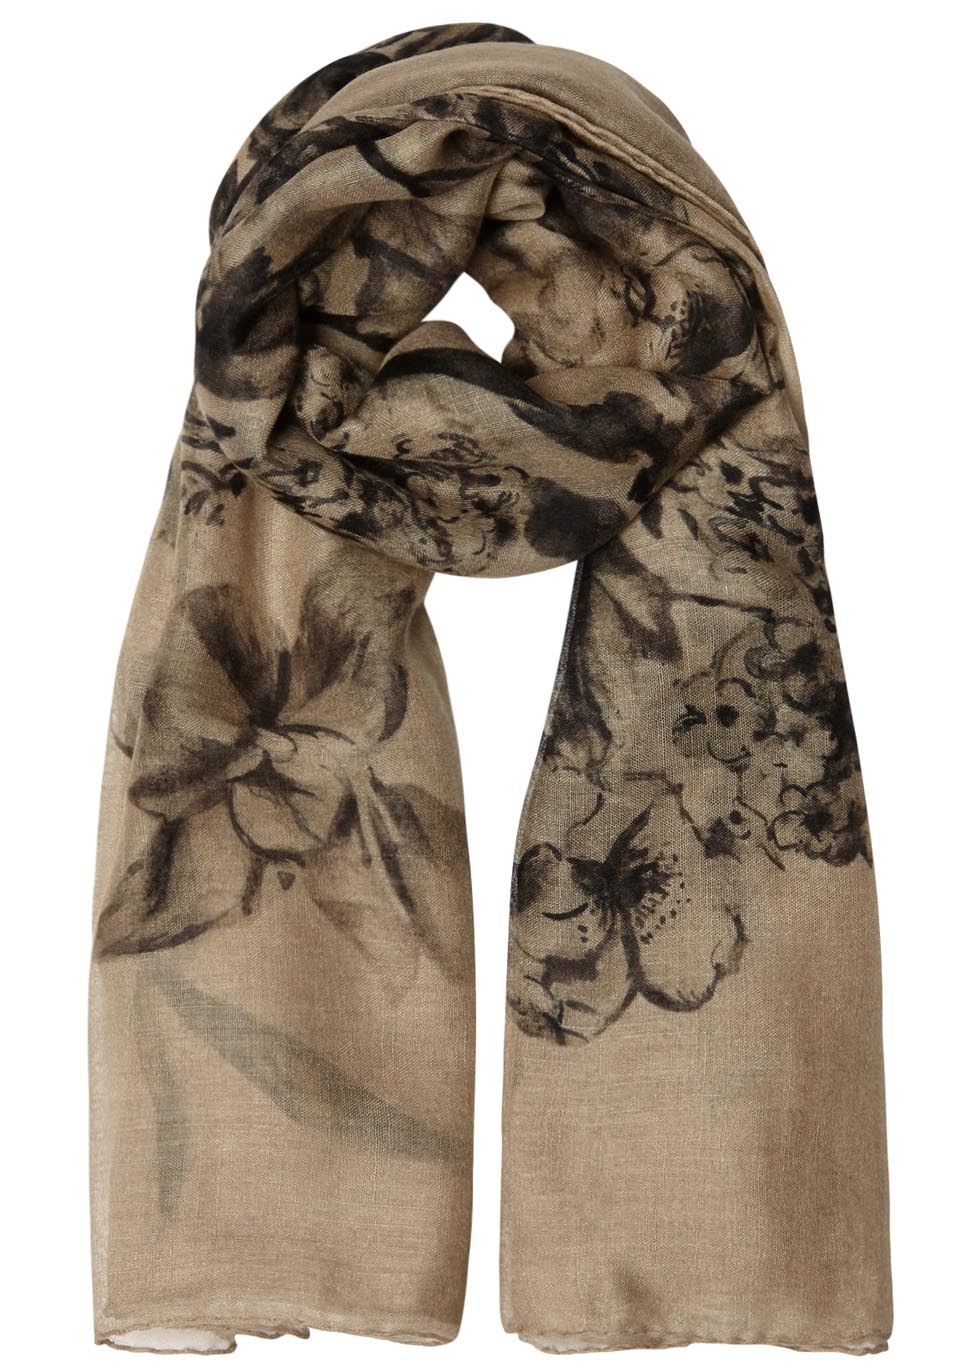 Stone Floral Print Cashmere Blend Scarf - predominant colour: stone; occasions: casual, occasion; type of pattern: large; style: regular; size: standard; pattern: florals; material: cashmere; season: s/s 2016; wardrobe: highlight